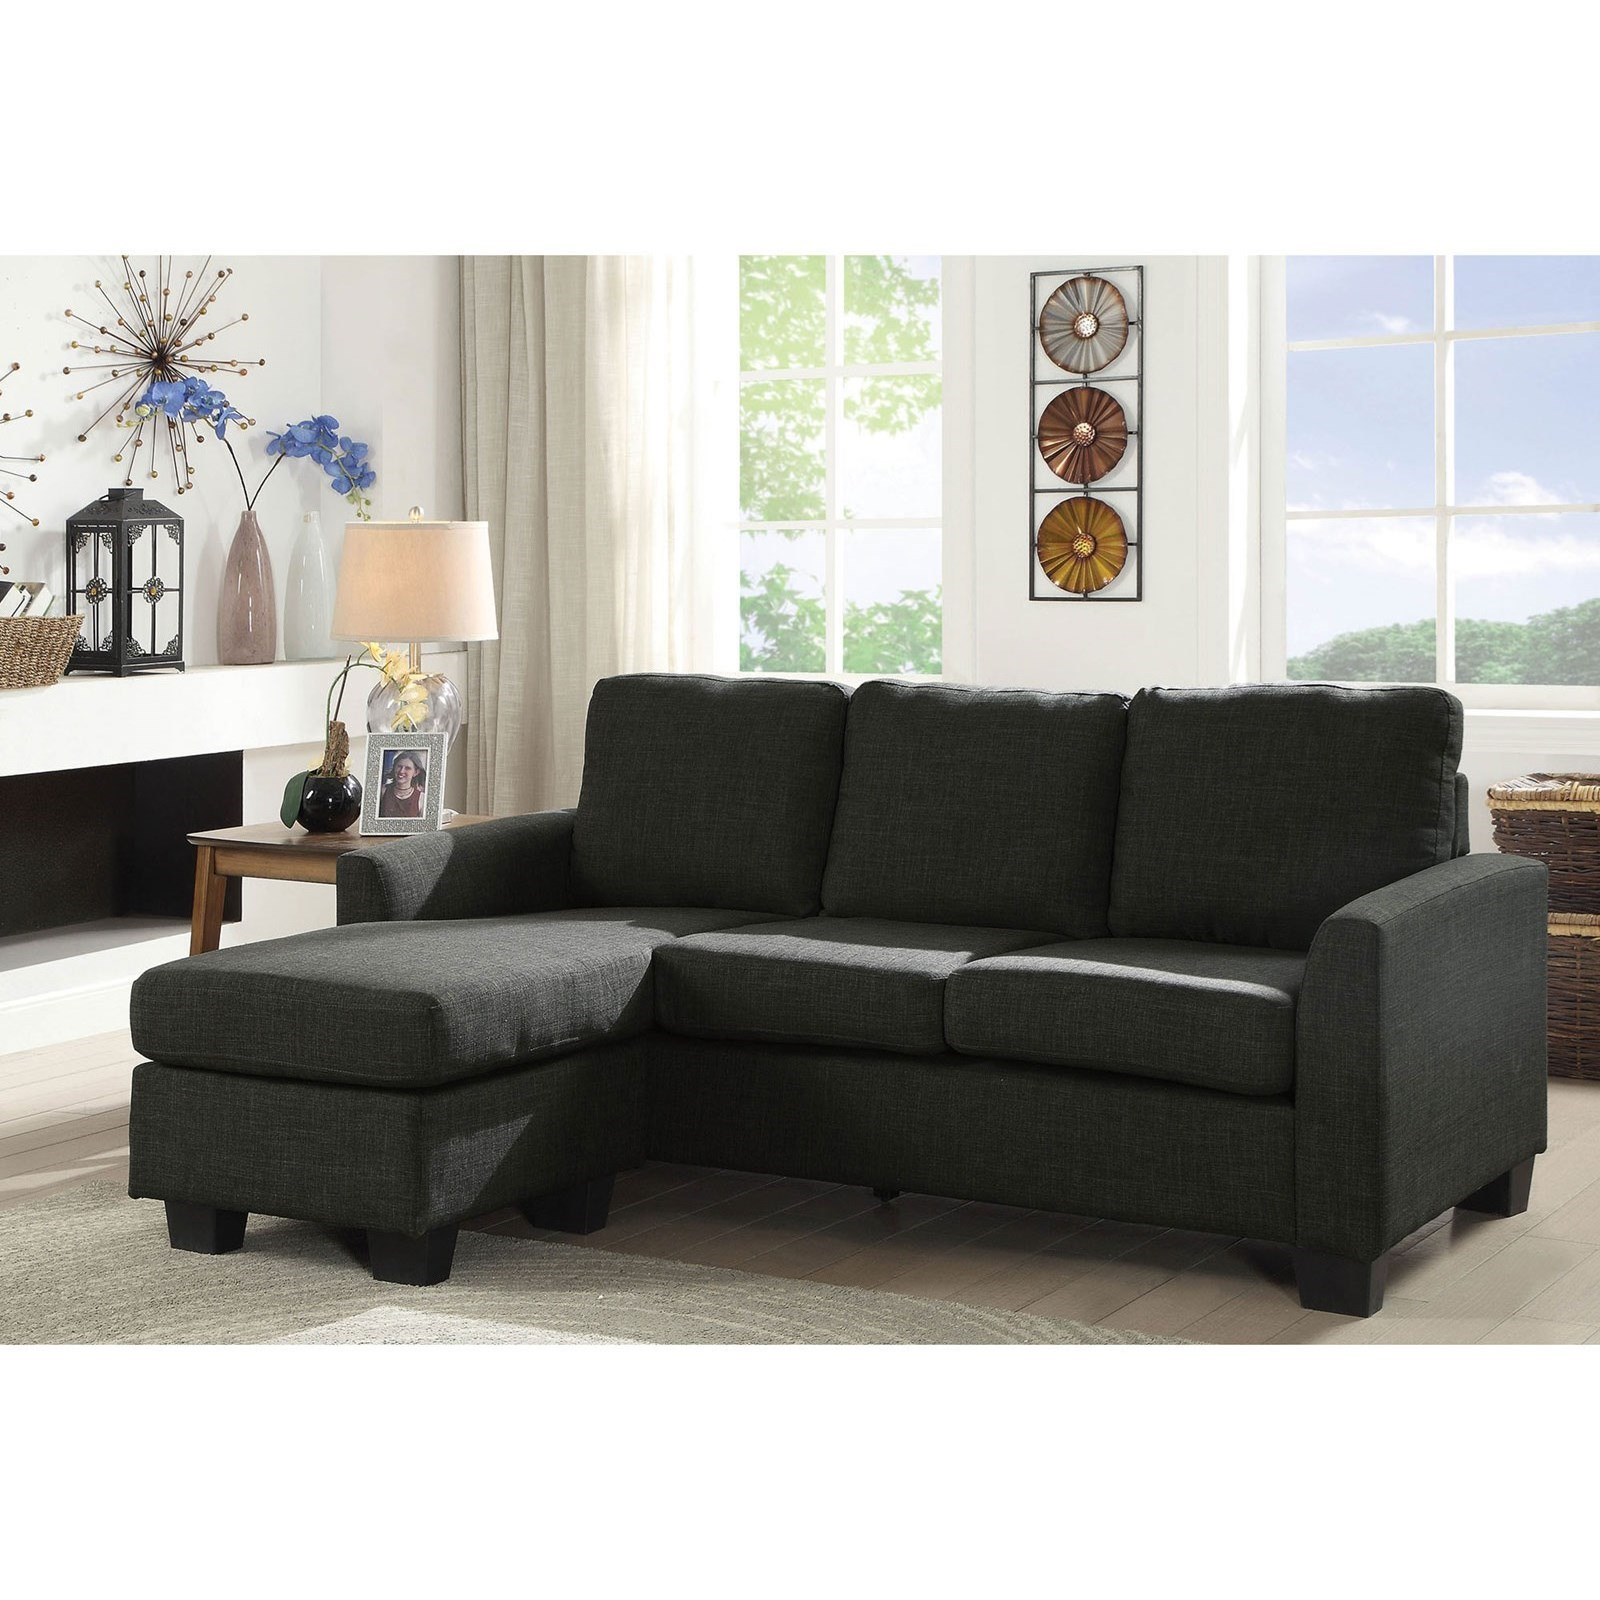 Furniture of America Erin Contemporary Sectional Sofa with Chaise ...